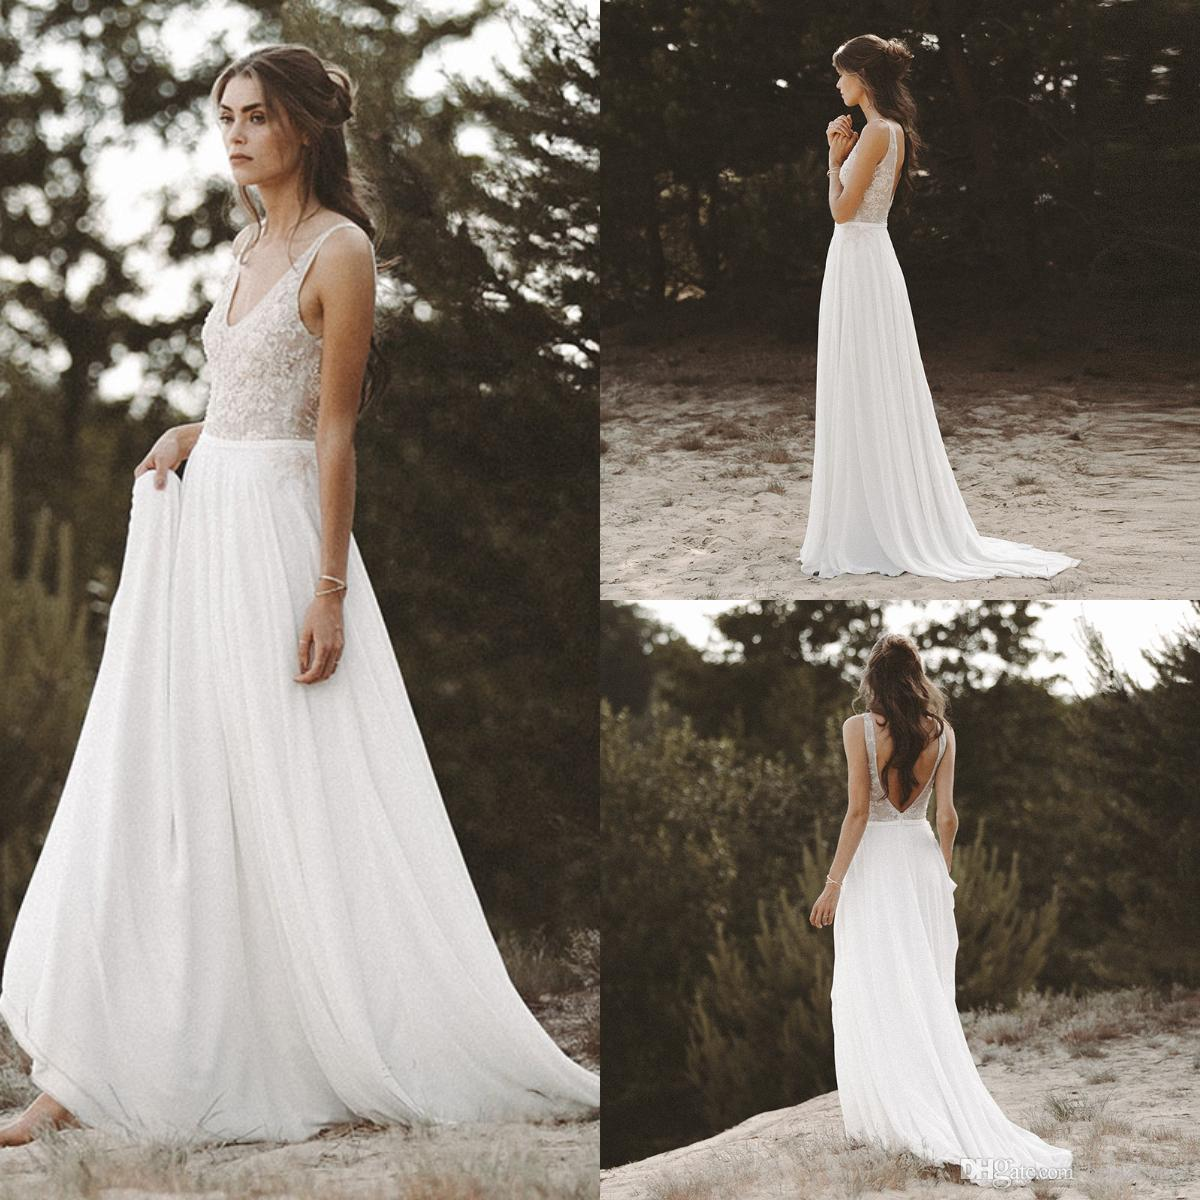 a0fb0d7d1b Lace Cheap White Boho Wedding Dresses For Beach Garden Scoop Chiffon  Bohemian Country Bridal Gowns For Women Sexy Low Back Robe De Mariée Wedding  Gown ...